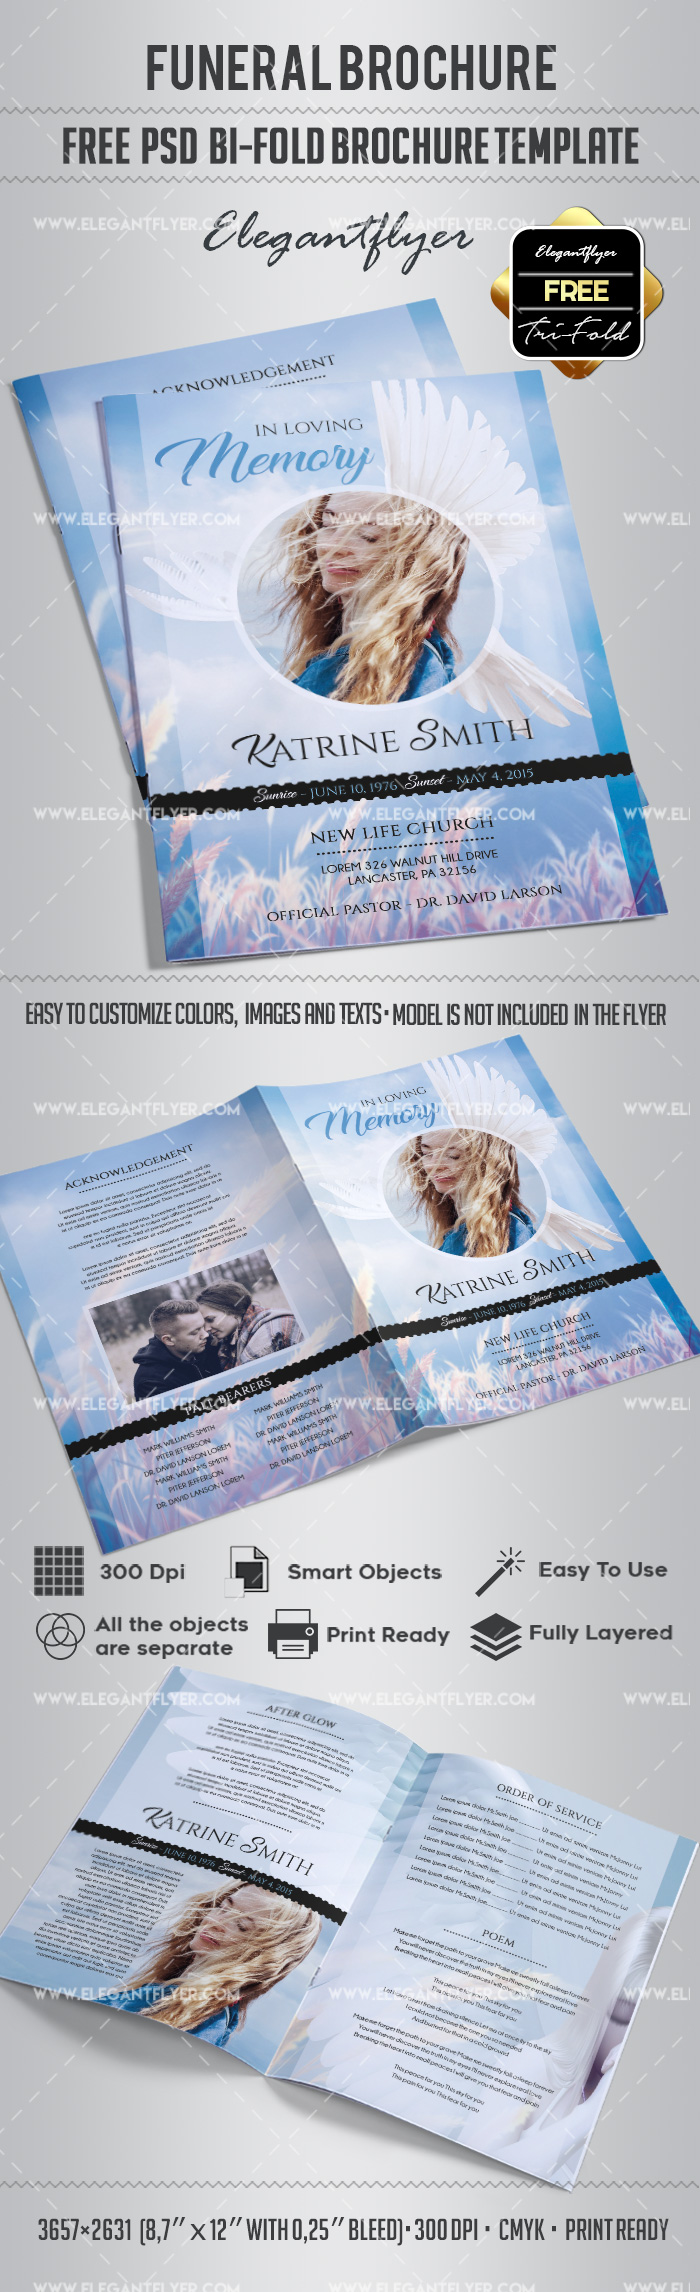 Free funeral bi fold brochure by elegantflyer for Funeral brochure templates free